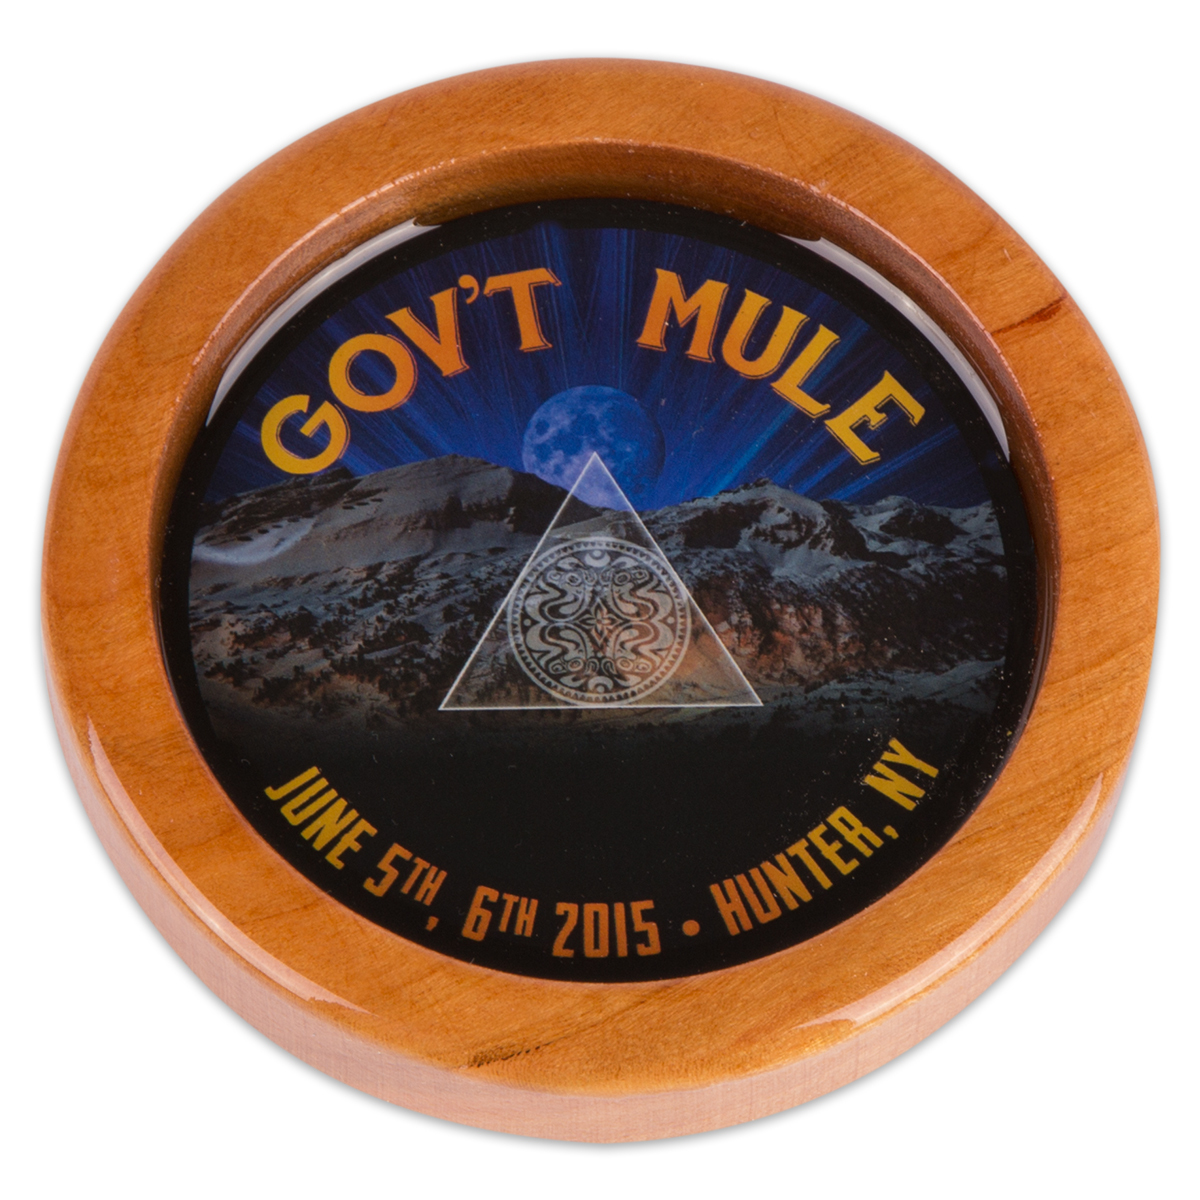 Dark Side of the Mule Event Coasters